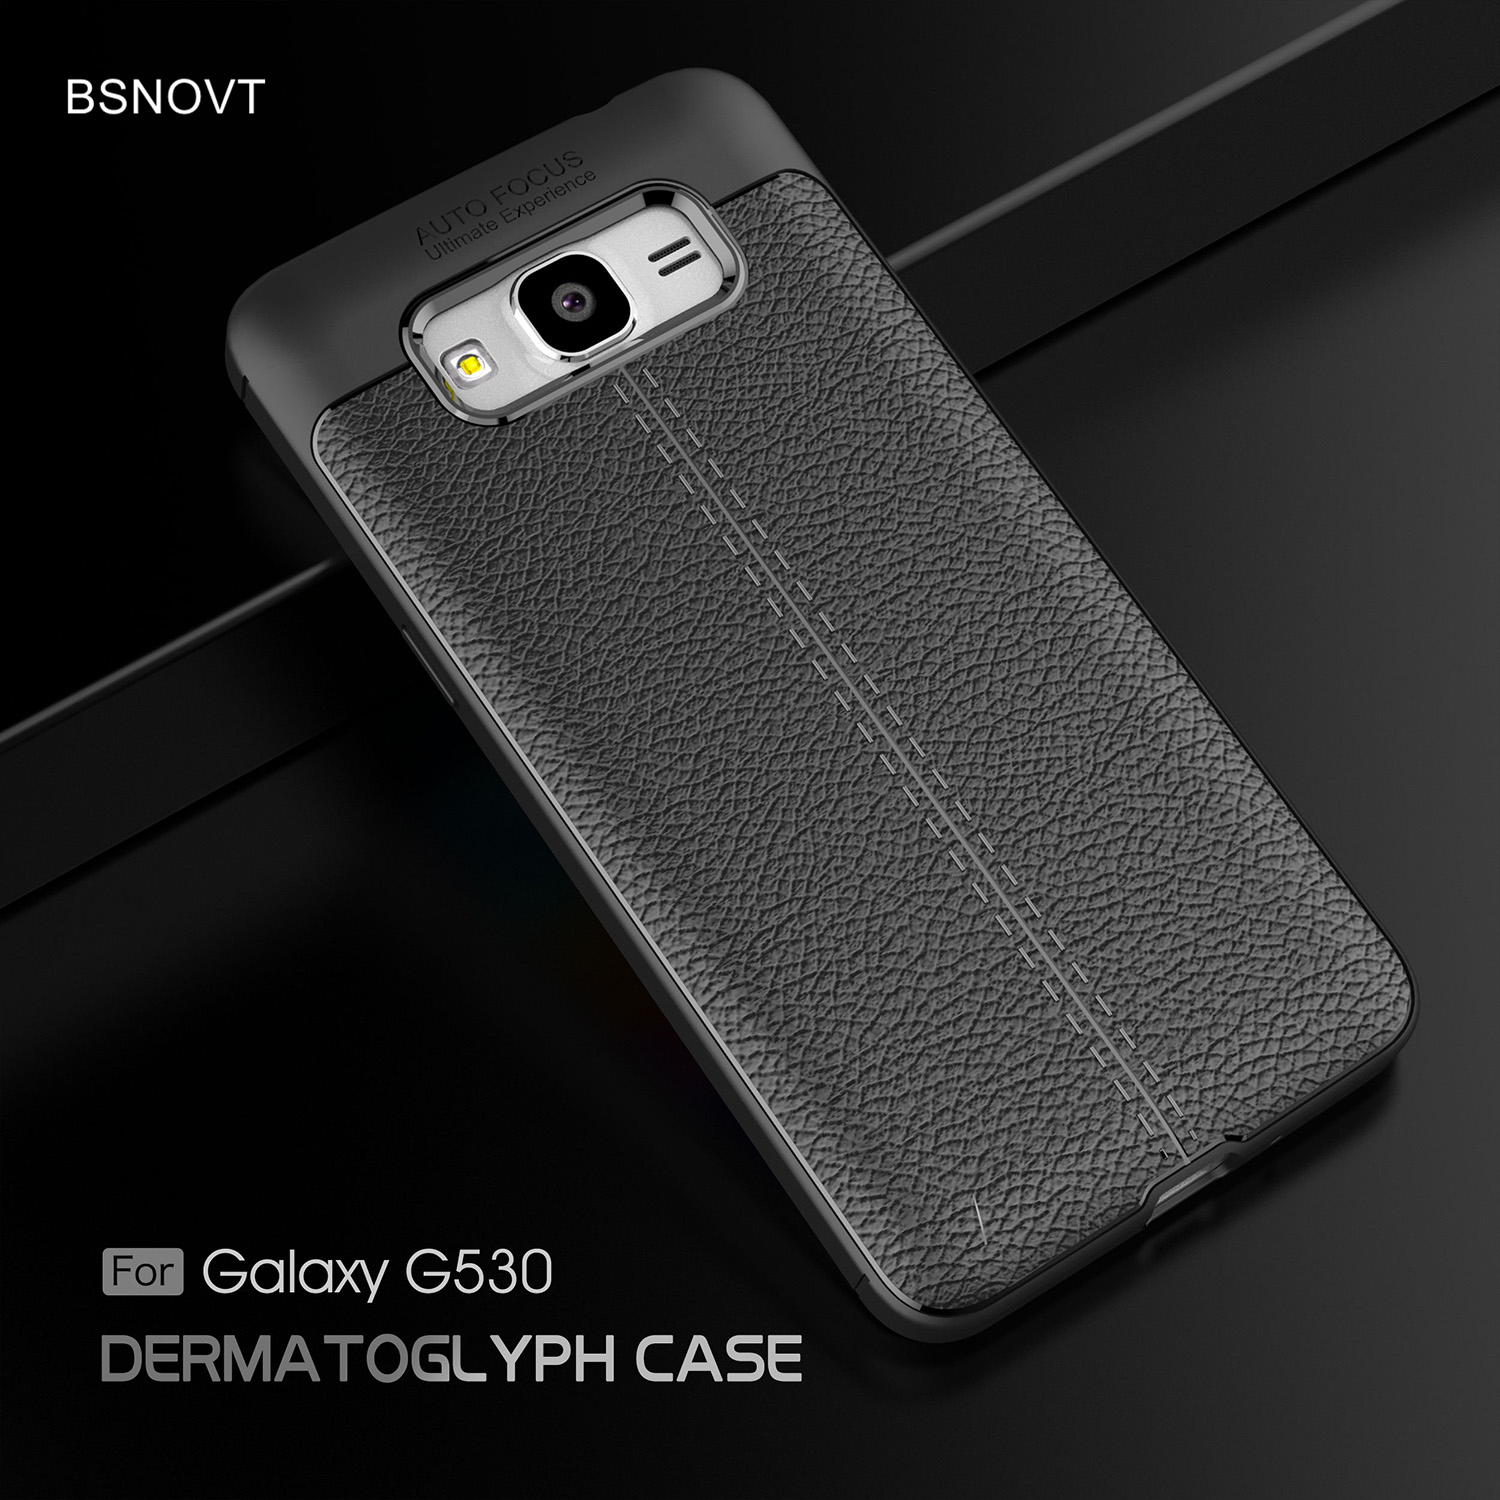 For Samsung Galaxy J2 Prime Case G532 Soft Silicone Shockproof Cover